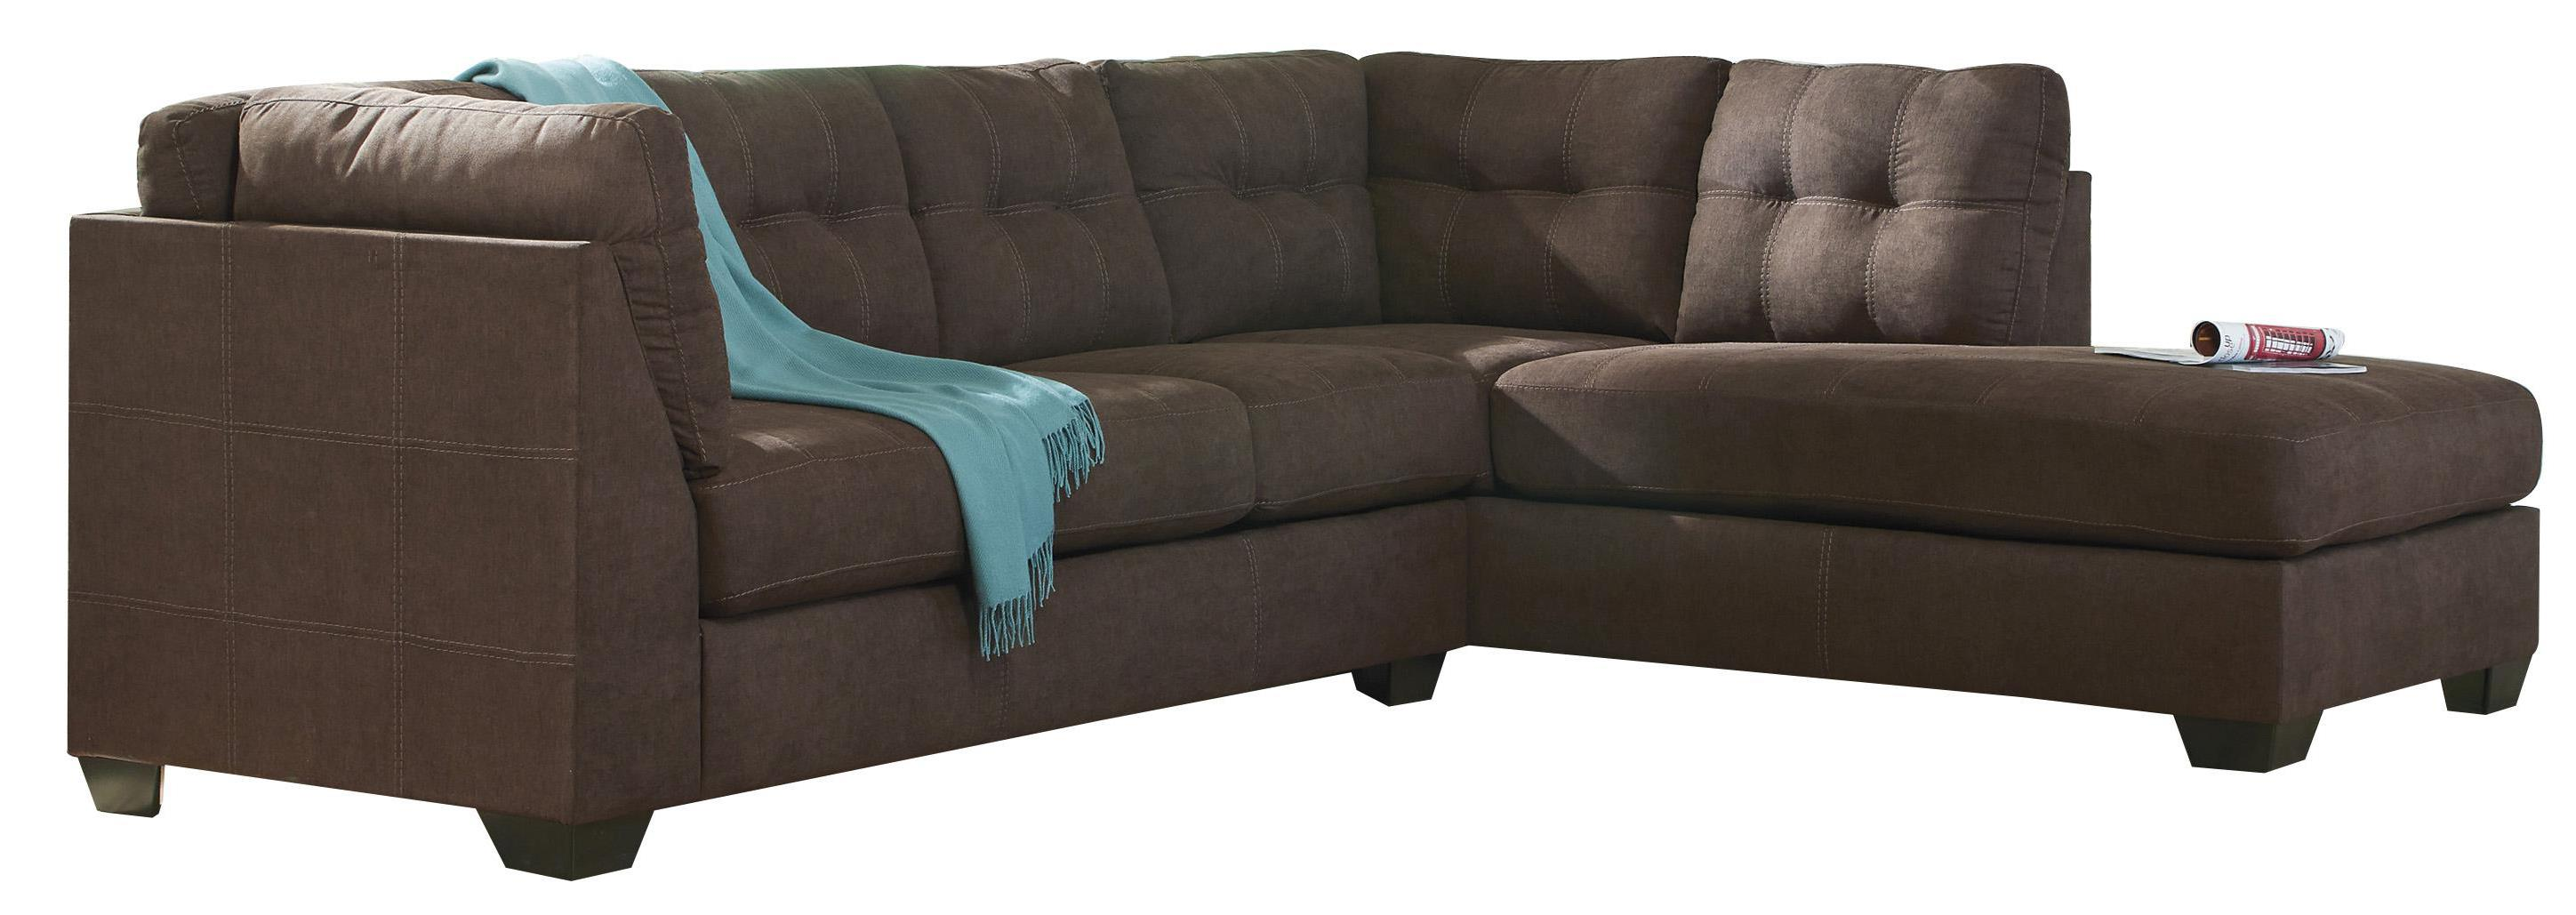 Malcolm - Walnut 2-Piece Sectional with Right Chaise by Trendz at Ruby Gordon Home